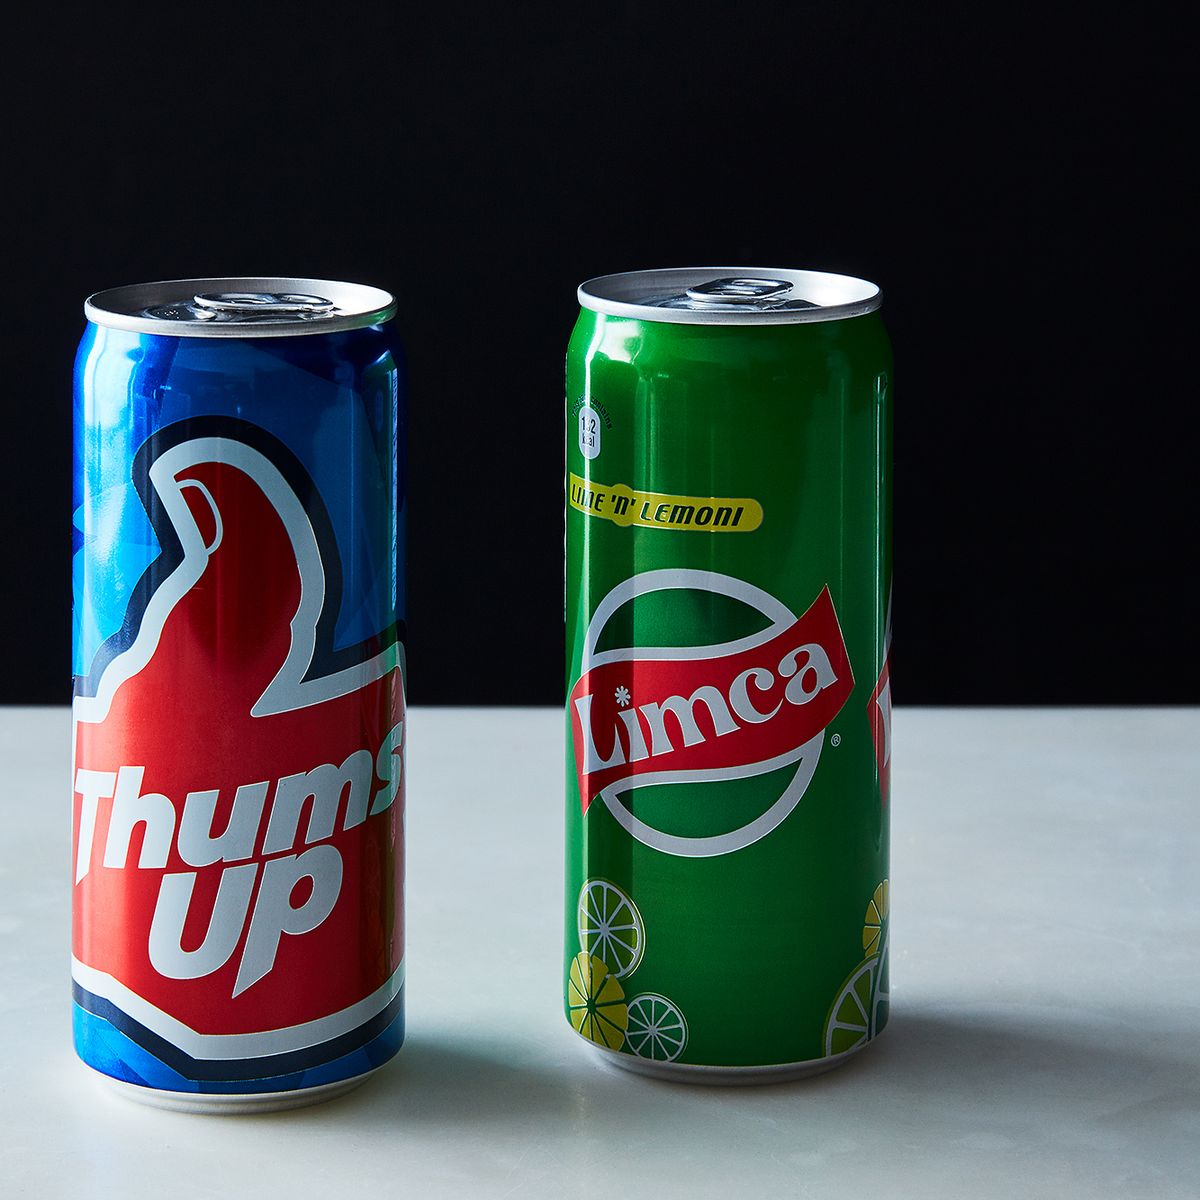 Thumps Up / Limca